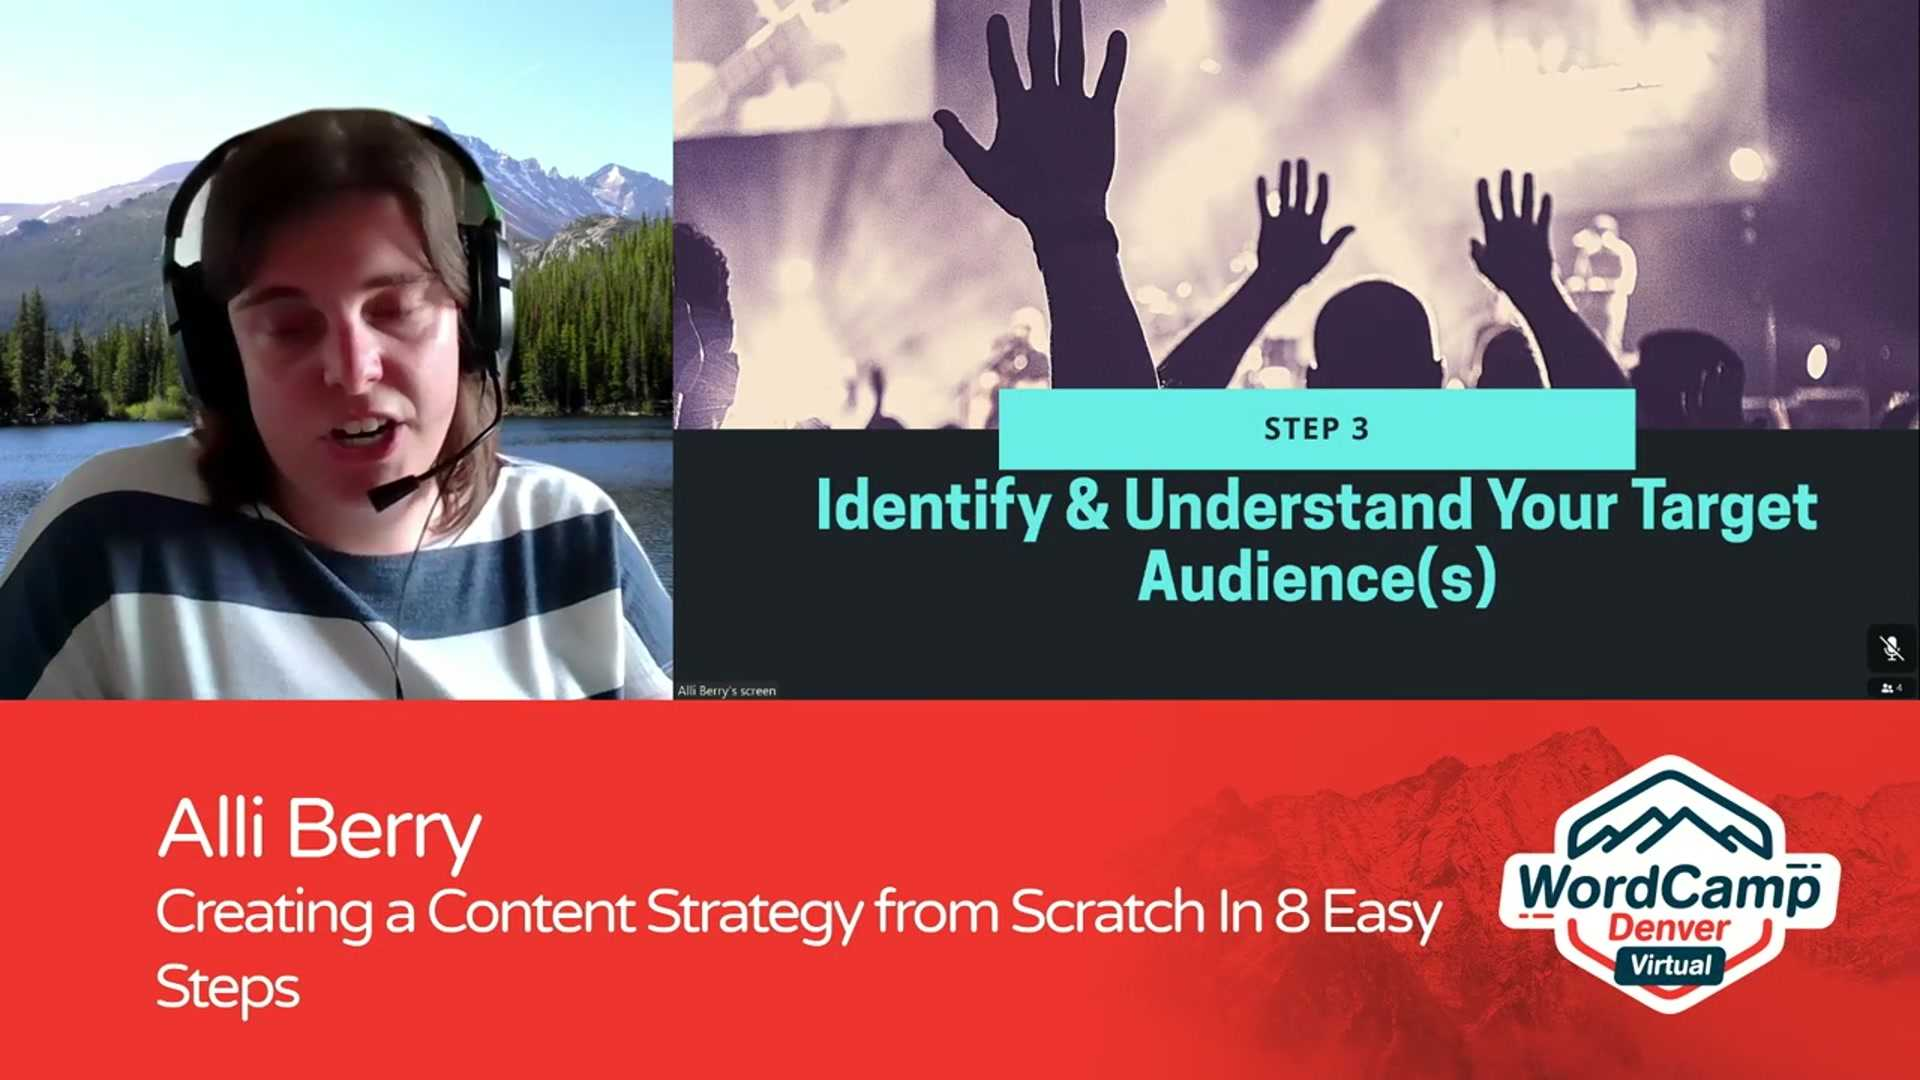 Alli Berry: [Workshop] Creating a Content Strategy from Scratch In 8 Easy Steps (part 2)